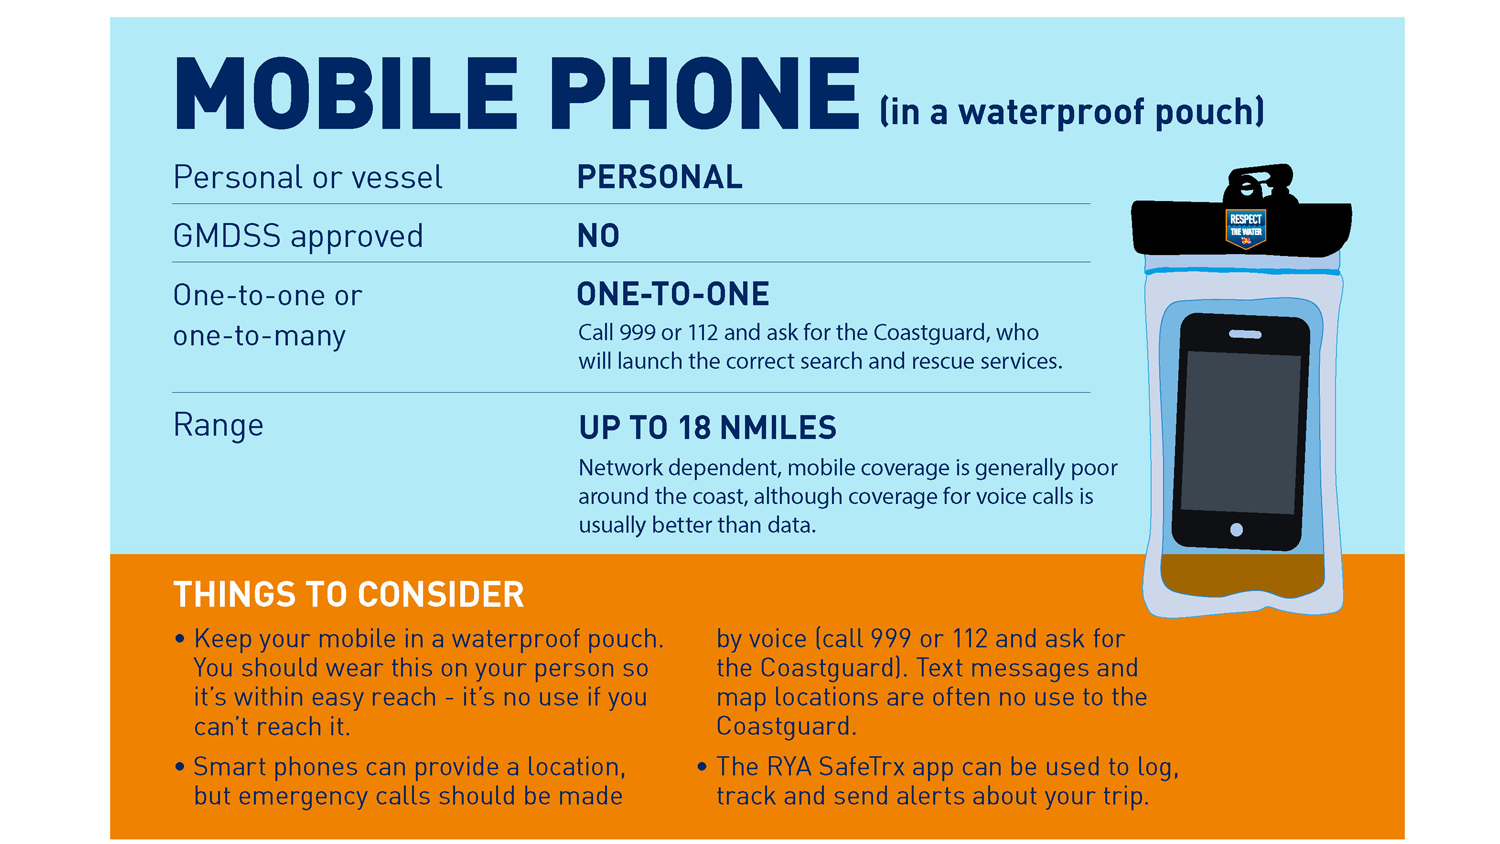 Infographic showing information about mobile phones and things to consider for usage